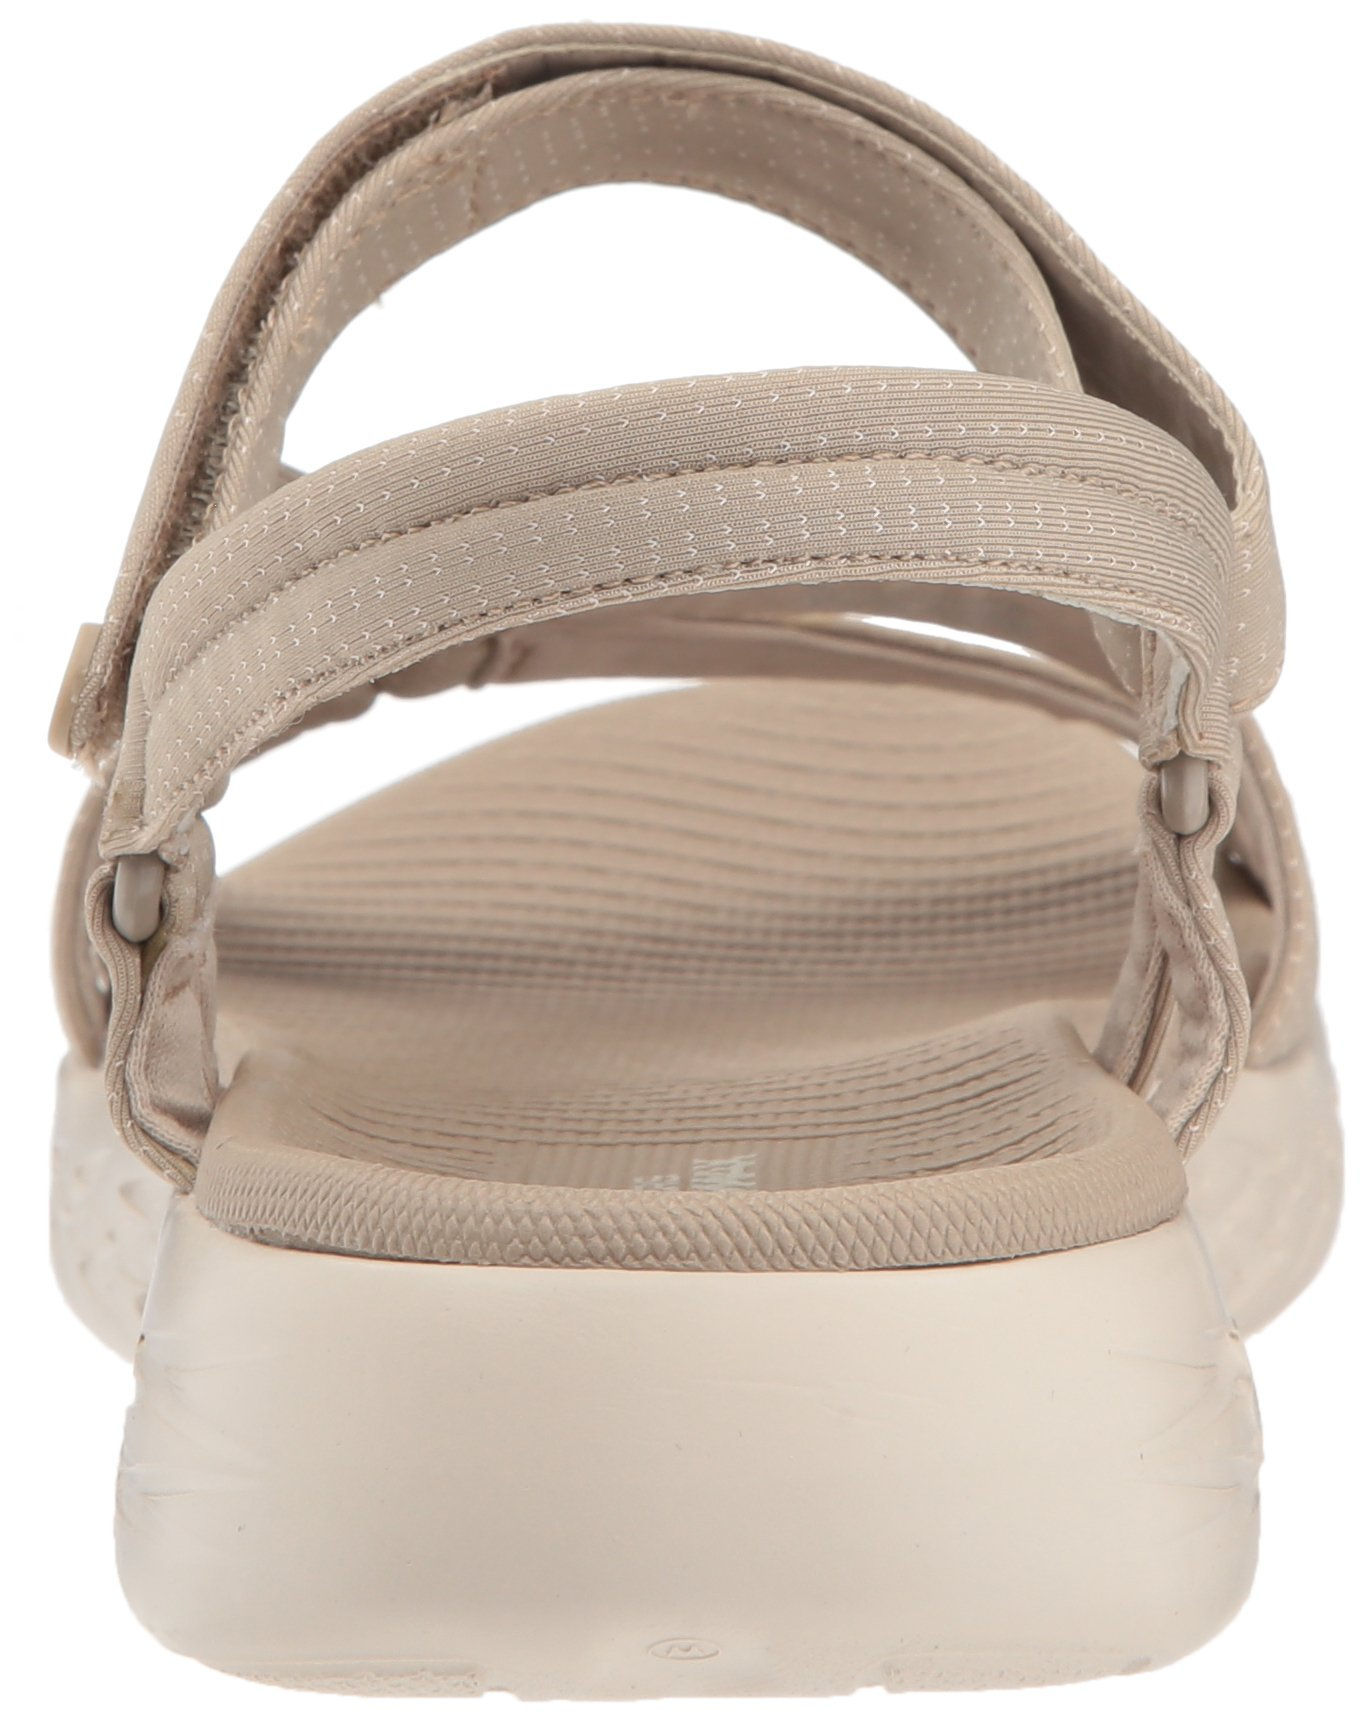 Skechers Performance Women's on-The-Go 600-Brilliancy Wide Sport Sandal,Natural,6 W US by Skechers (Image #2)